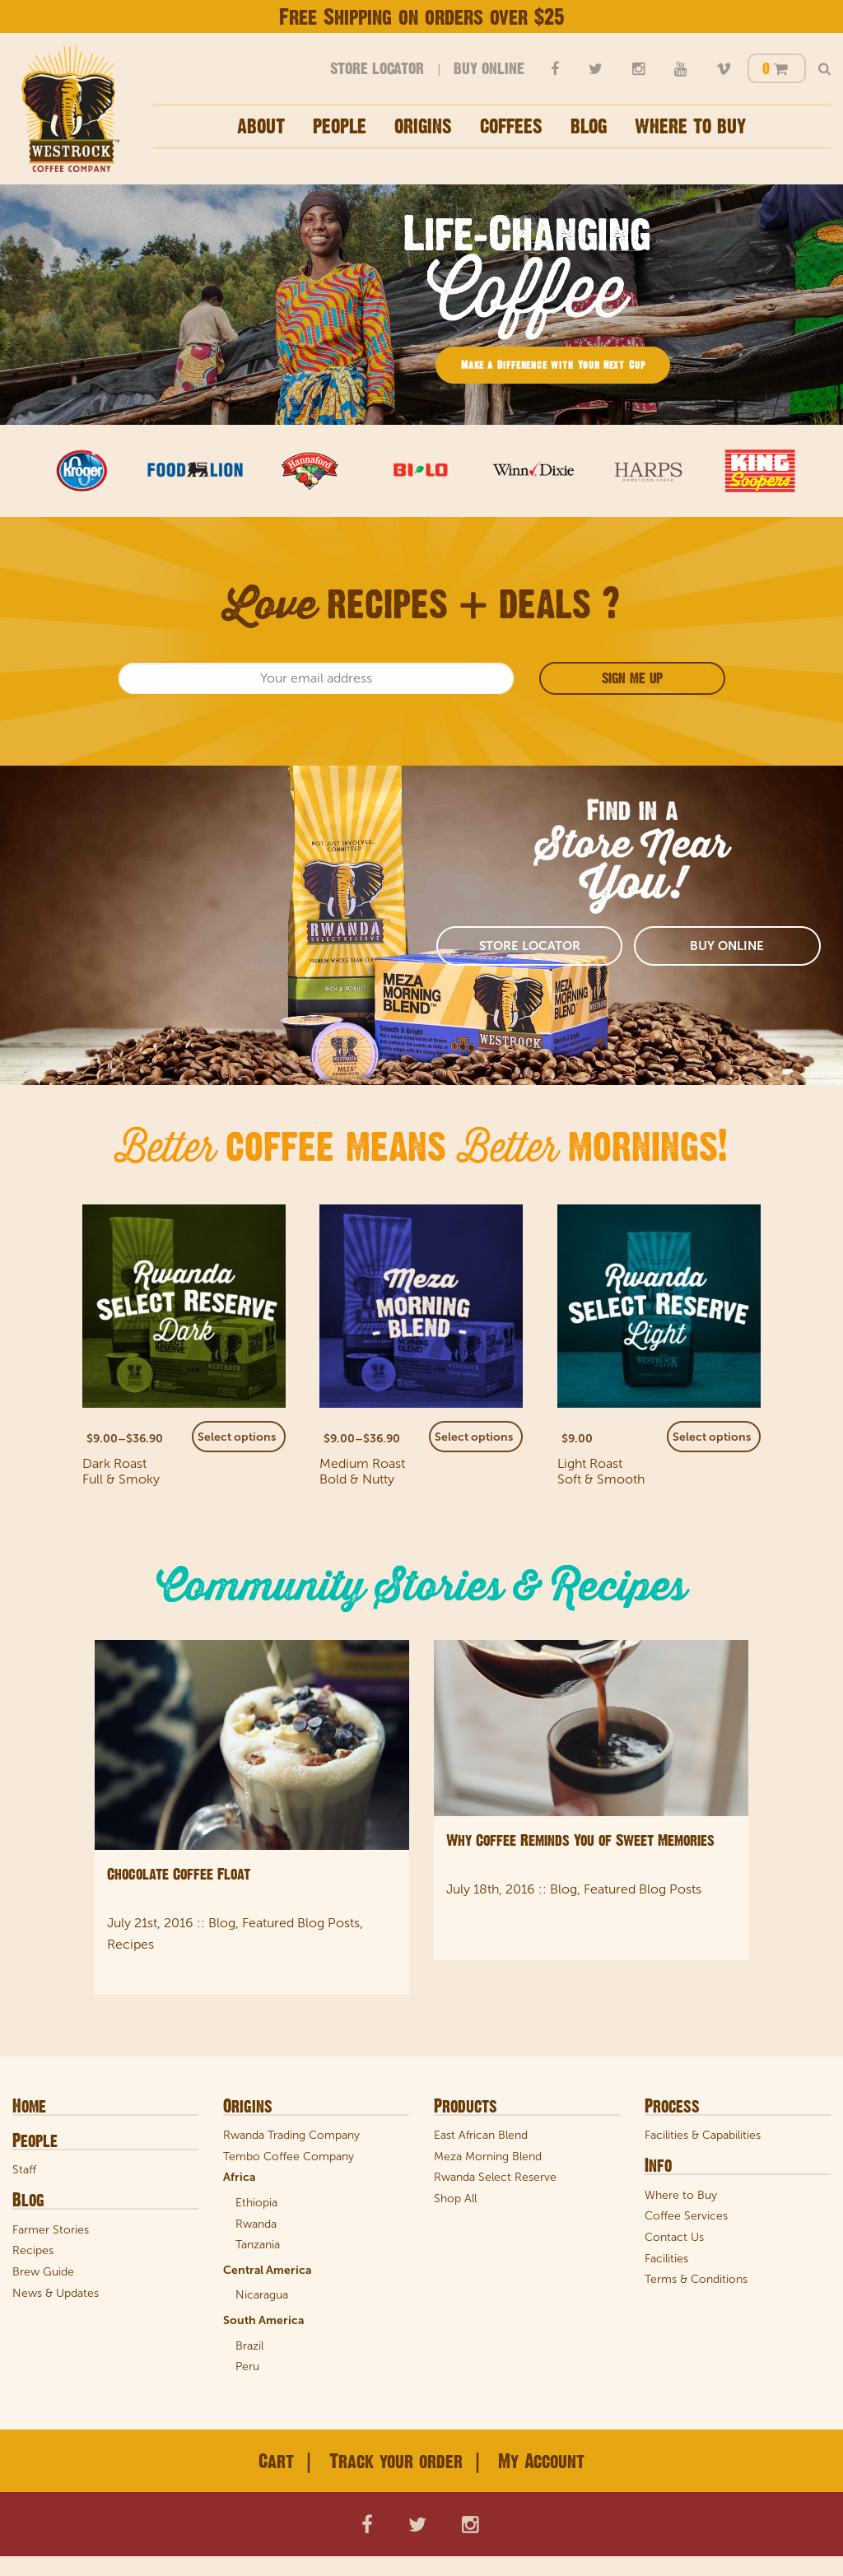 Westrock Coffee Company Llc S Competitors Revenue Number Of Employees Funding Acquisitions News Owler Company Profile